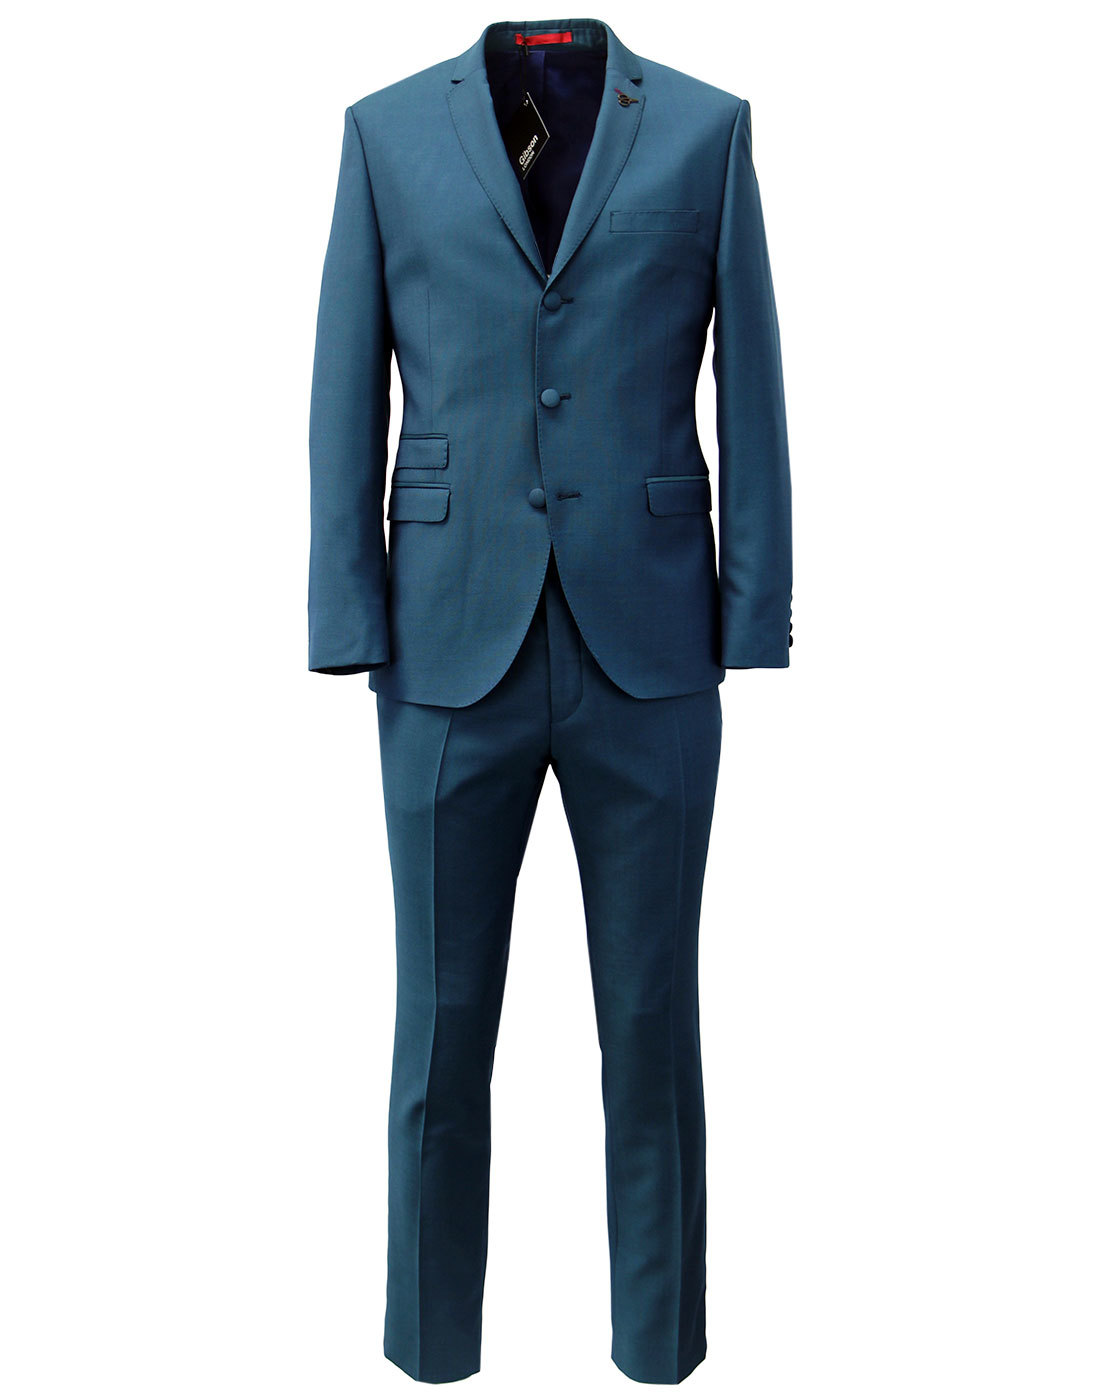 GIBSON LONDON Retro Mod Teal Hopsack Tonic Suit